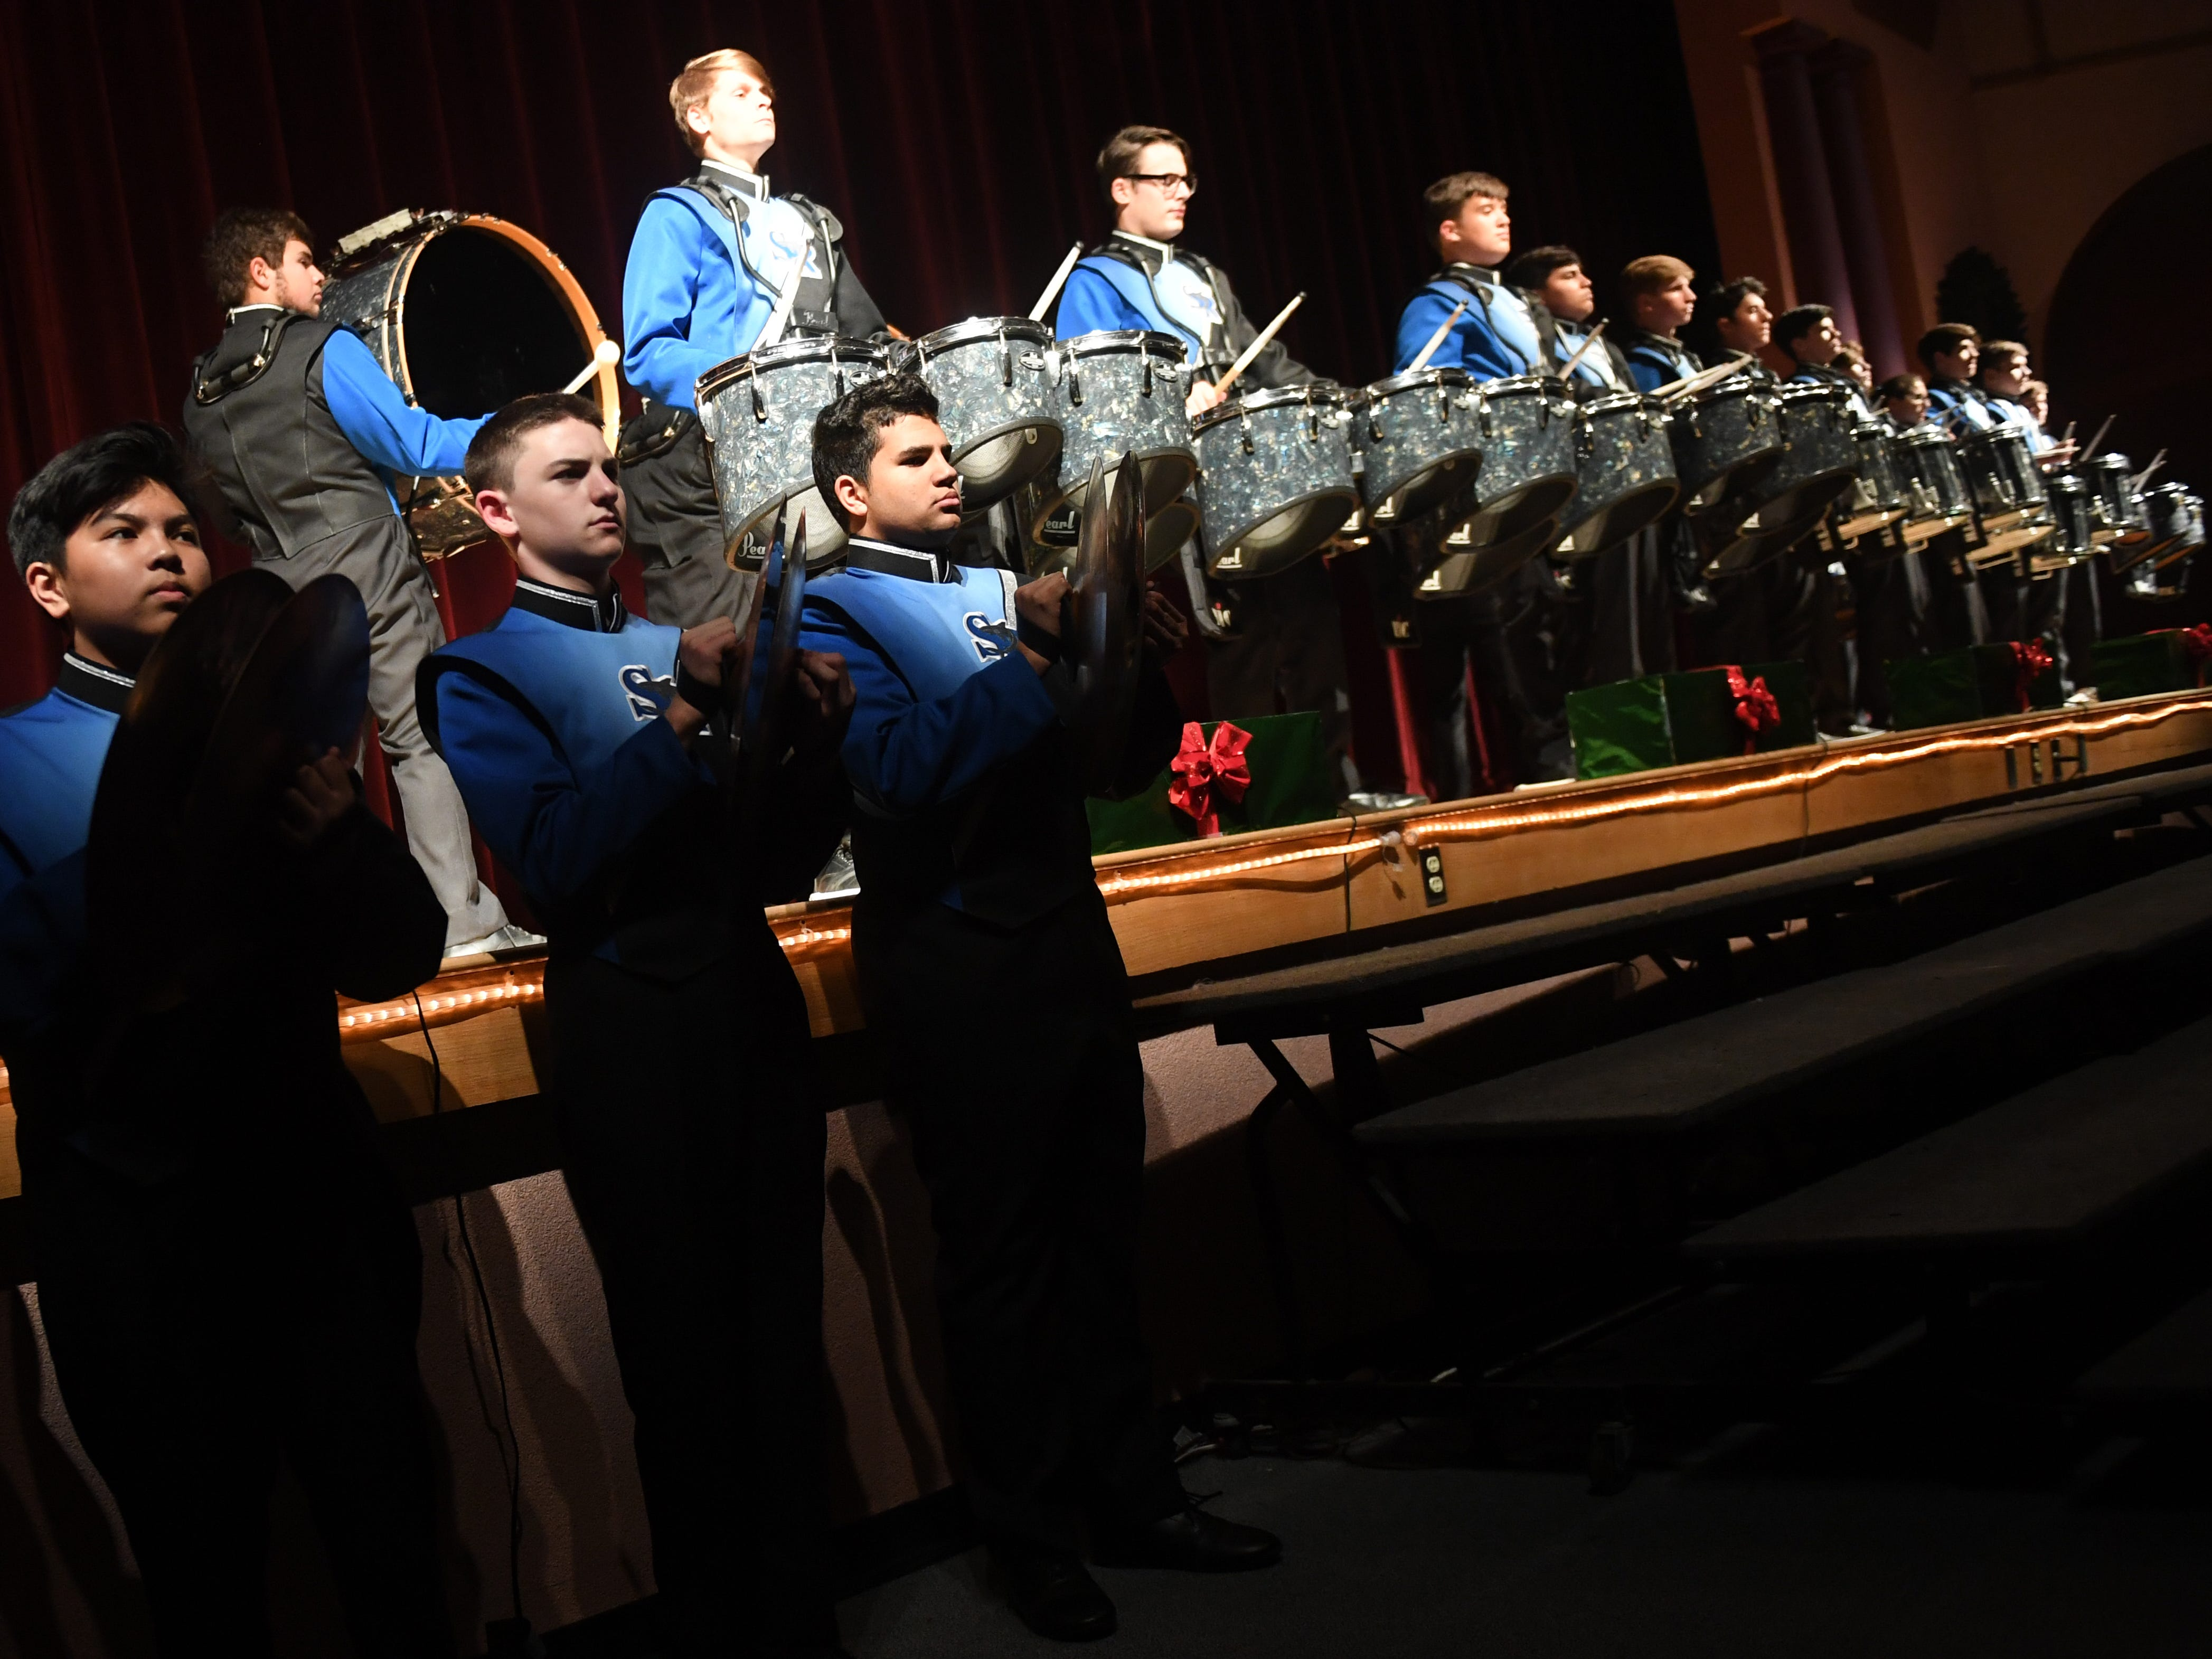 Students of the Sebastian River High School Music Department run through a full dress rehearsal of this year's Prism Concert Wednesday, Dec. 5, 2018 at the school. The Prism Concert is Sebastian River High School Music Department's largest fundraising event of the year. The 2-hour concert showcases the talents of the Concert Bands, Jazz Band, the Flag and Dance Line and the SRHS Choral Program. The Prism Concert is traditionally held the first or second week of December.